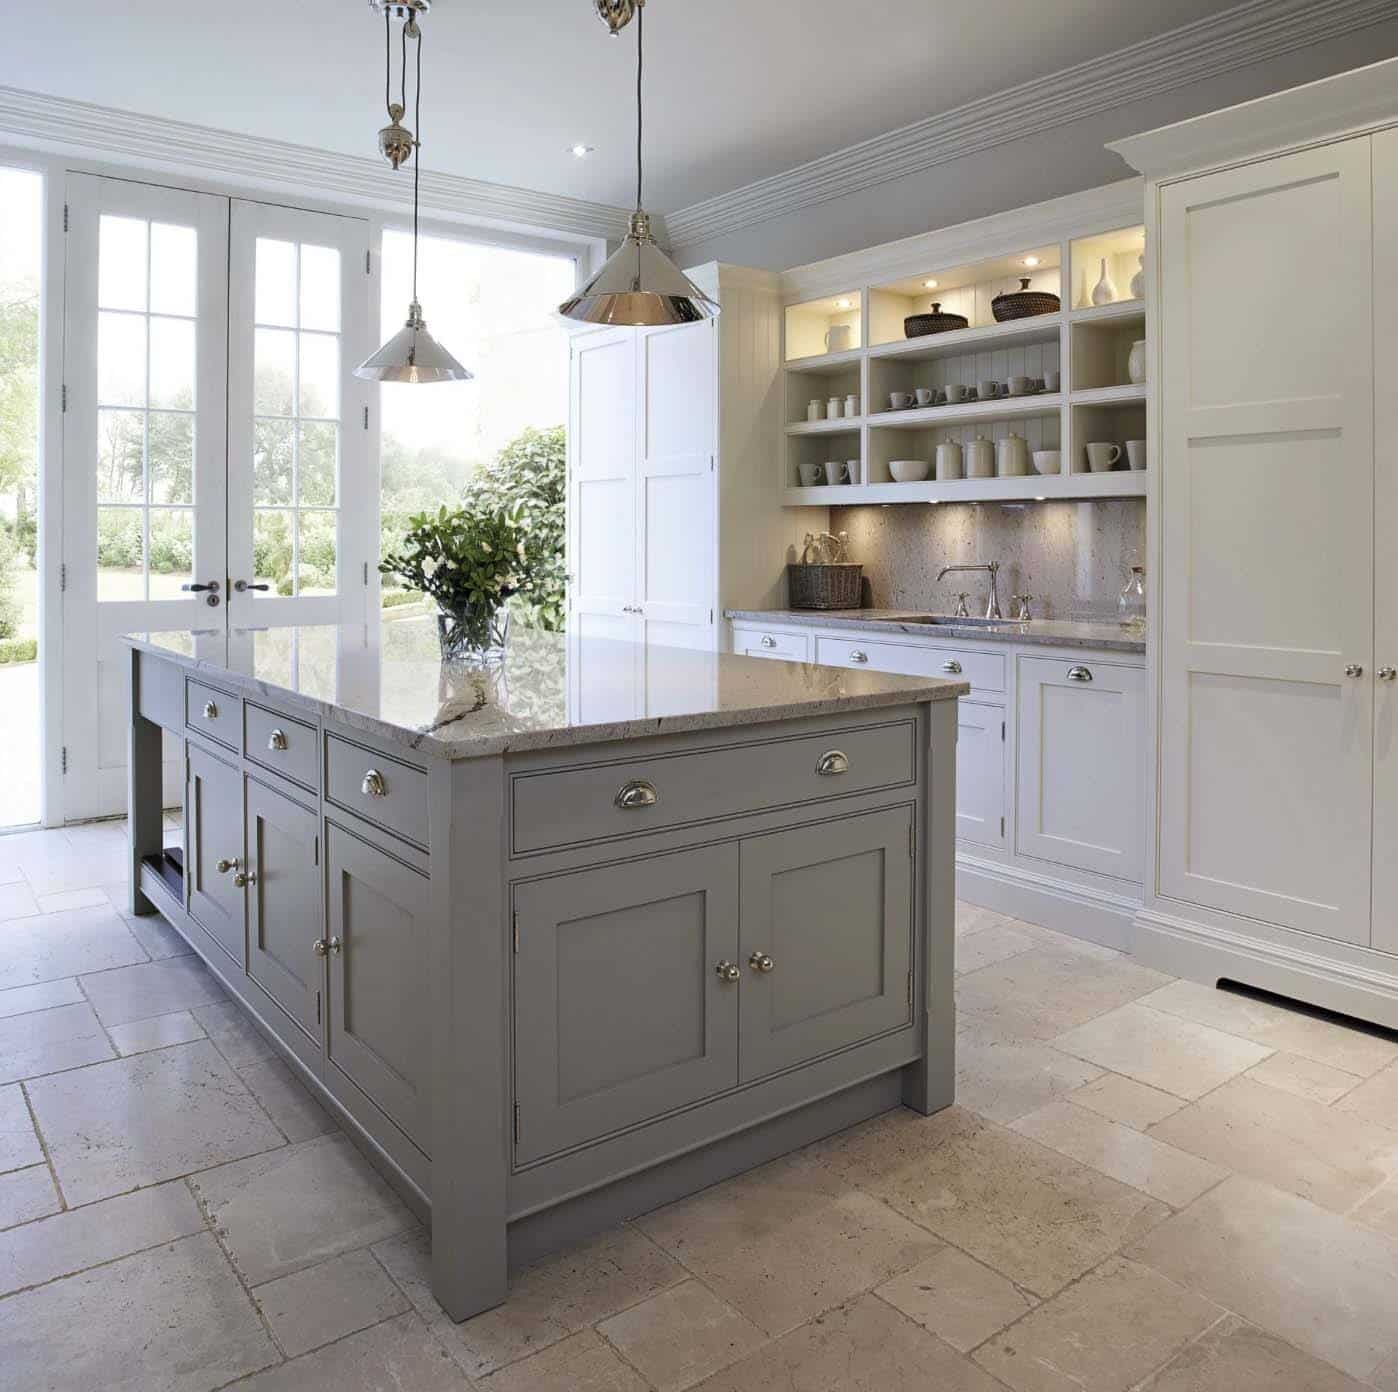 Kitchen Island Ideas-05-1 Kindesign